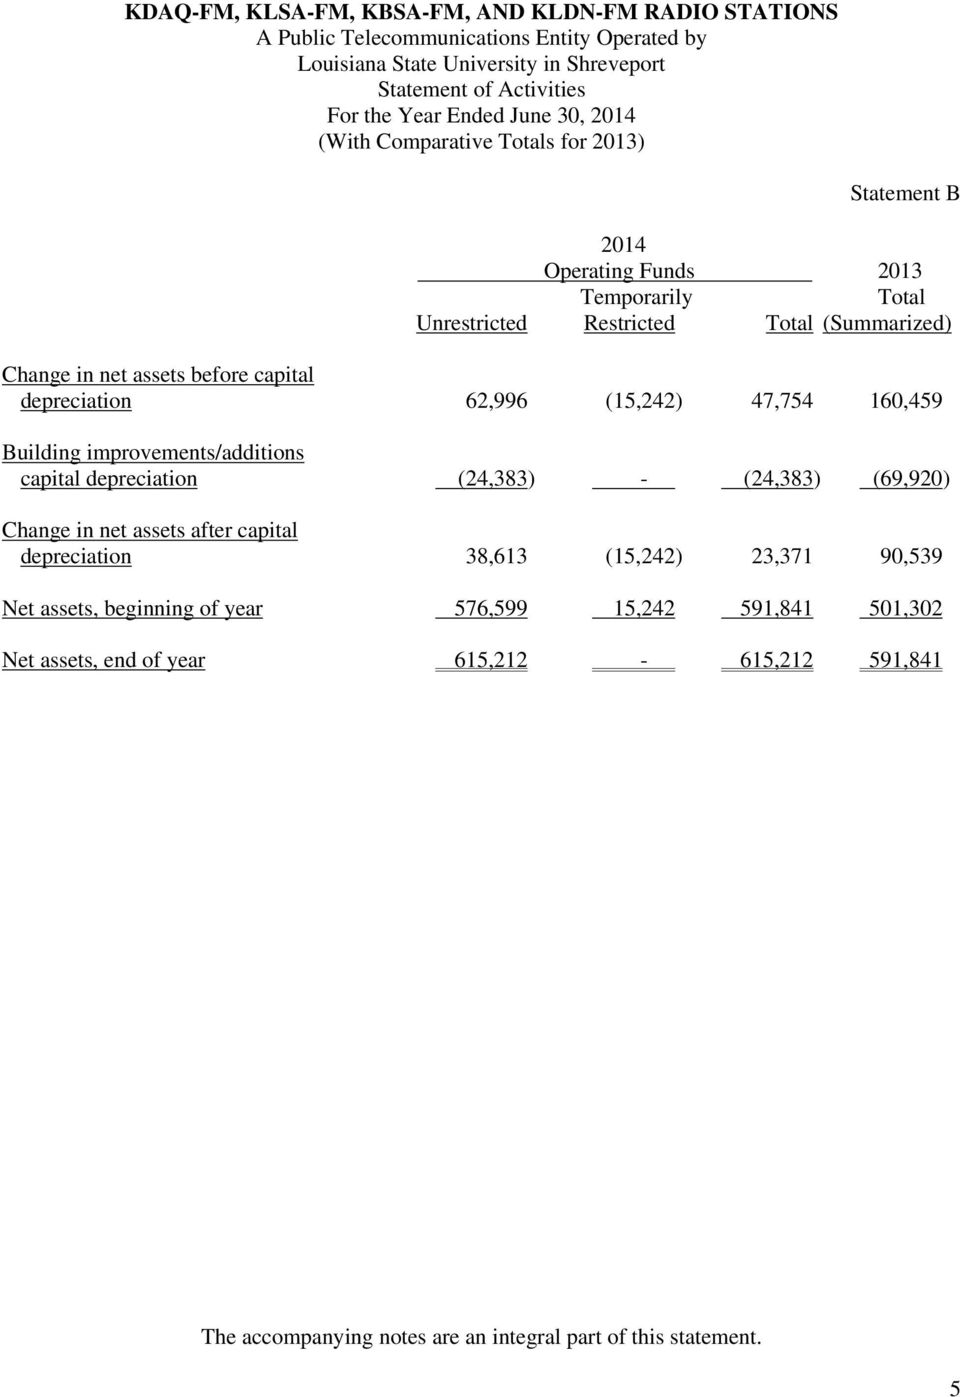 depreciation 62,996 (15,242) 47,754 160,459 Building improvements/additions capital depreciation (24,383) - (24,383) (69,920) Change in net assets after capital depreciation 38,613